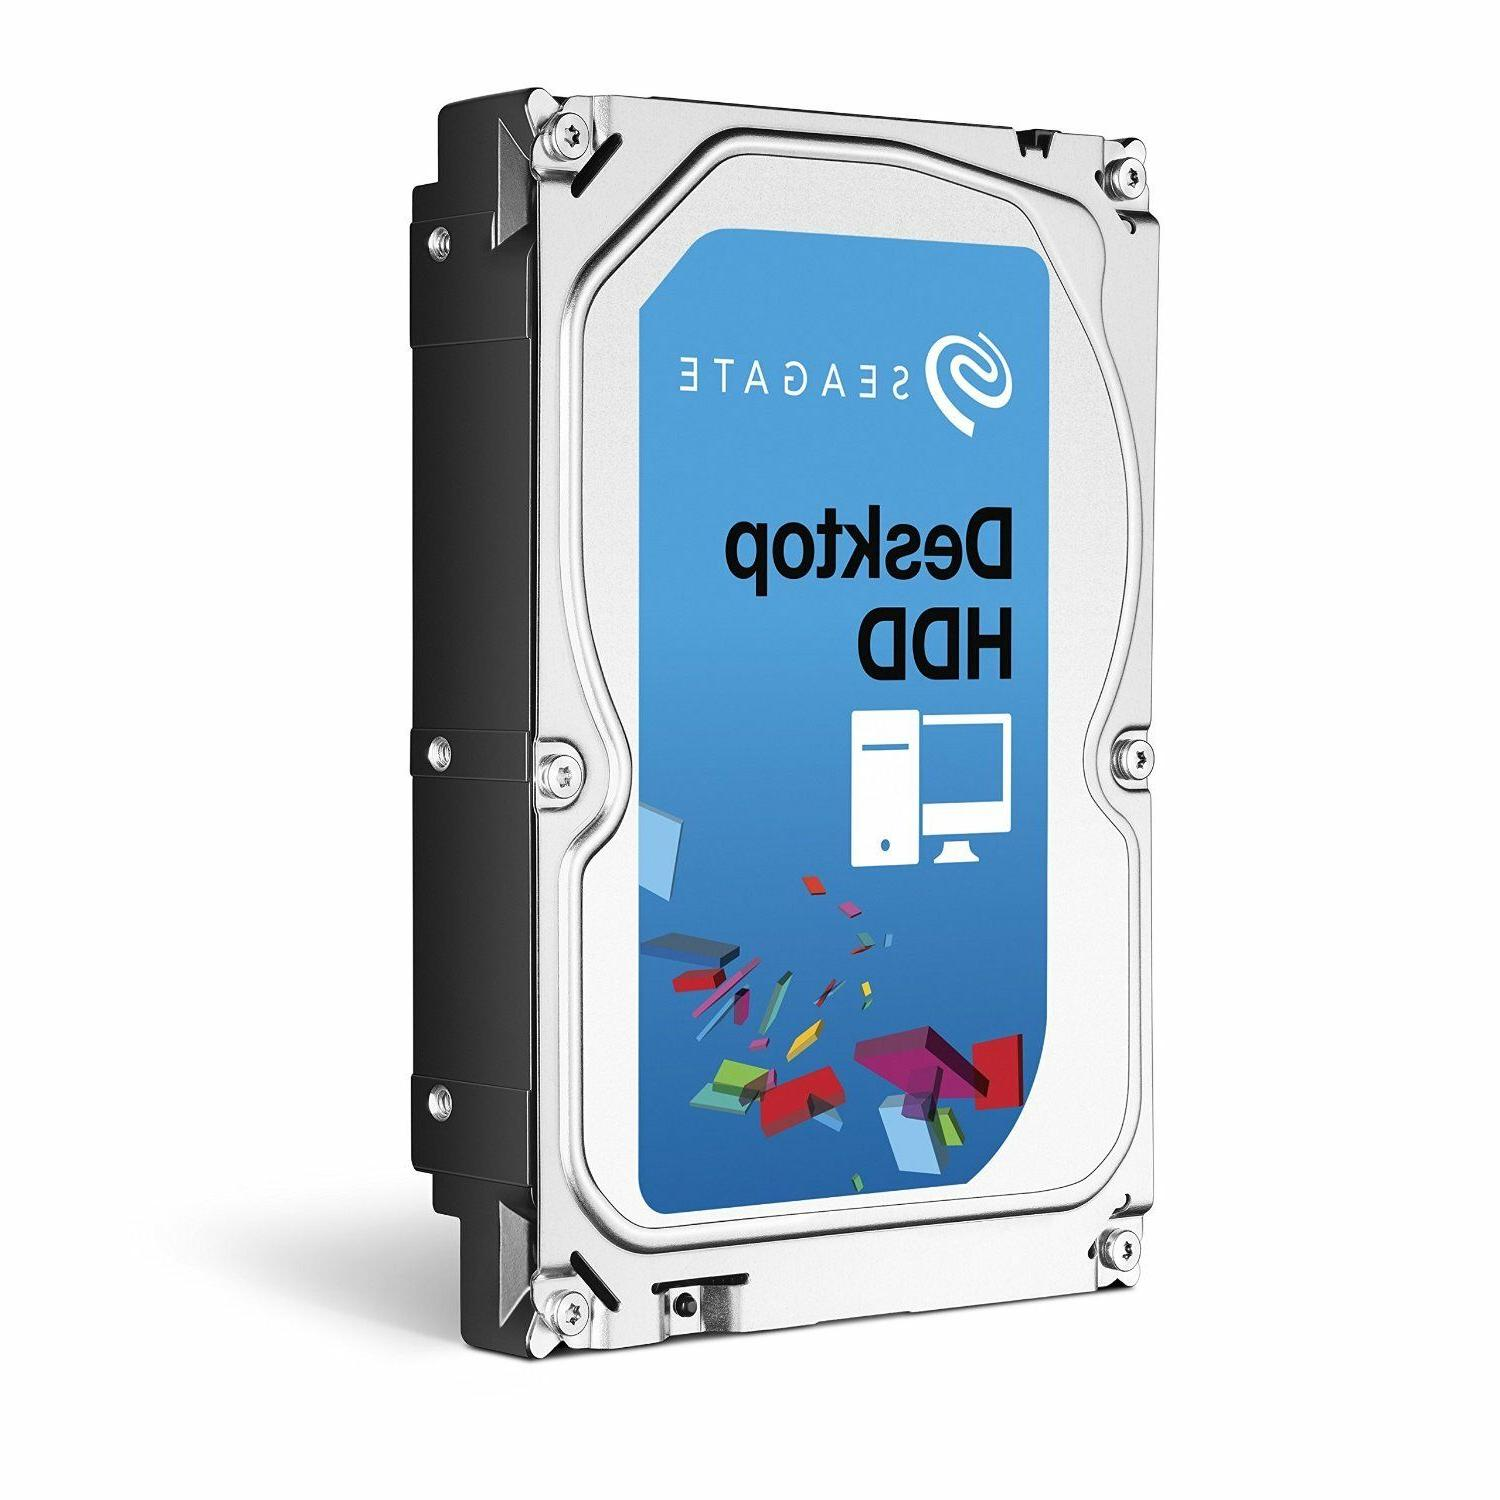 10-Core Gaming PC HDD SSD Radeon R7